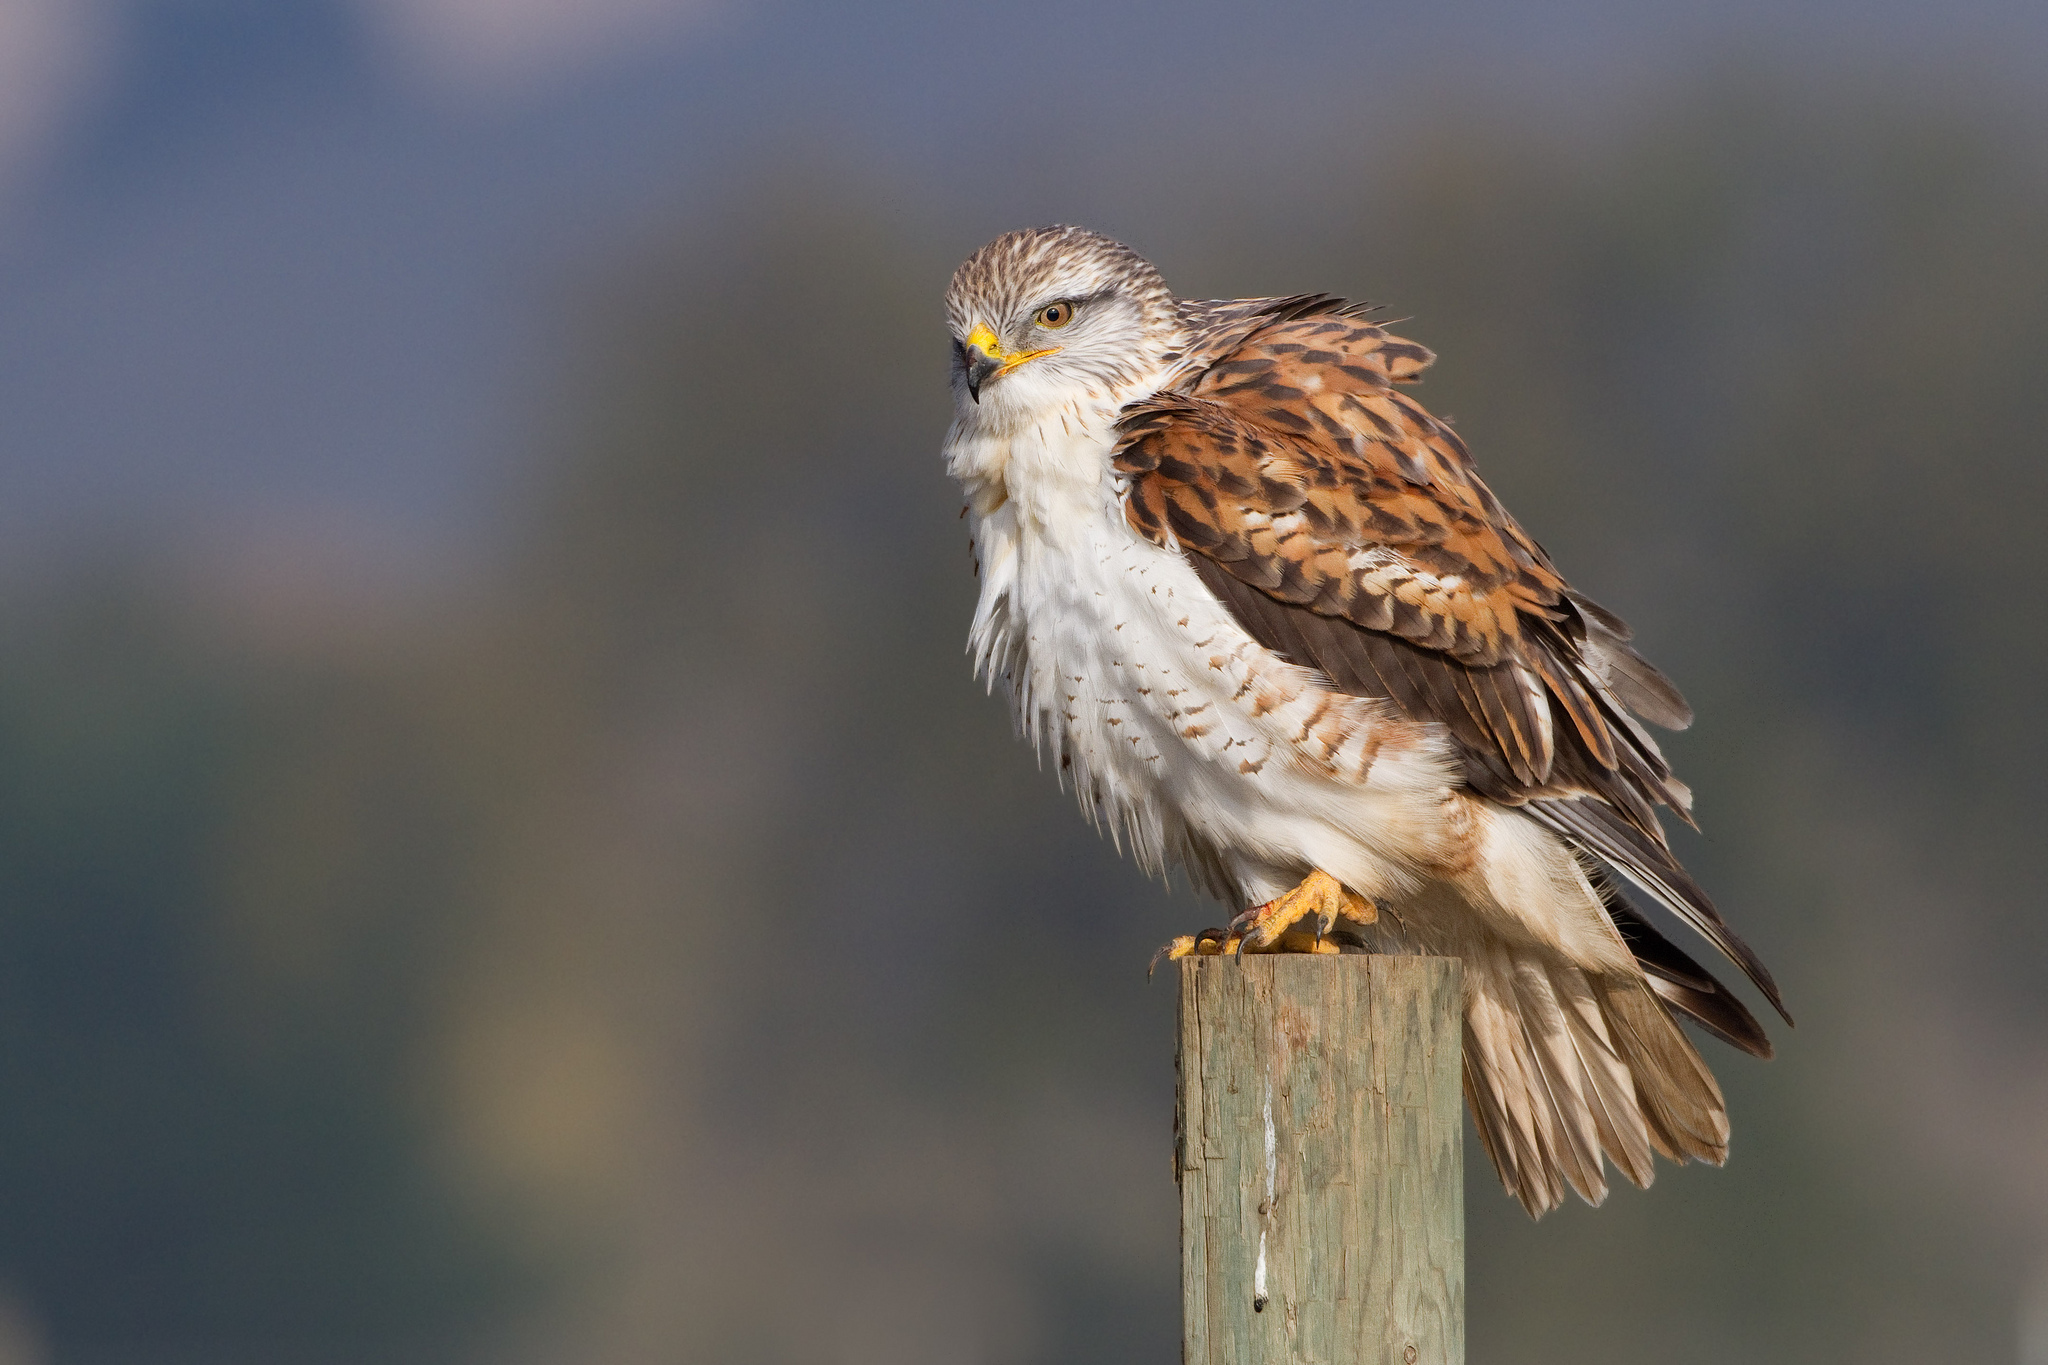 Hawk hd wallpaper background image 2048x1365 id - Hawk iphone wallpaper ...